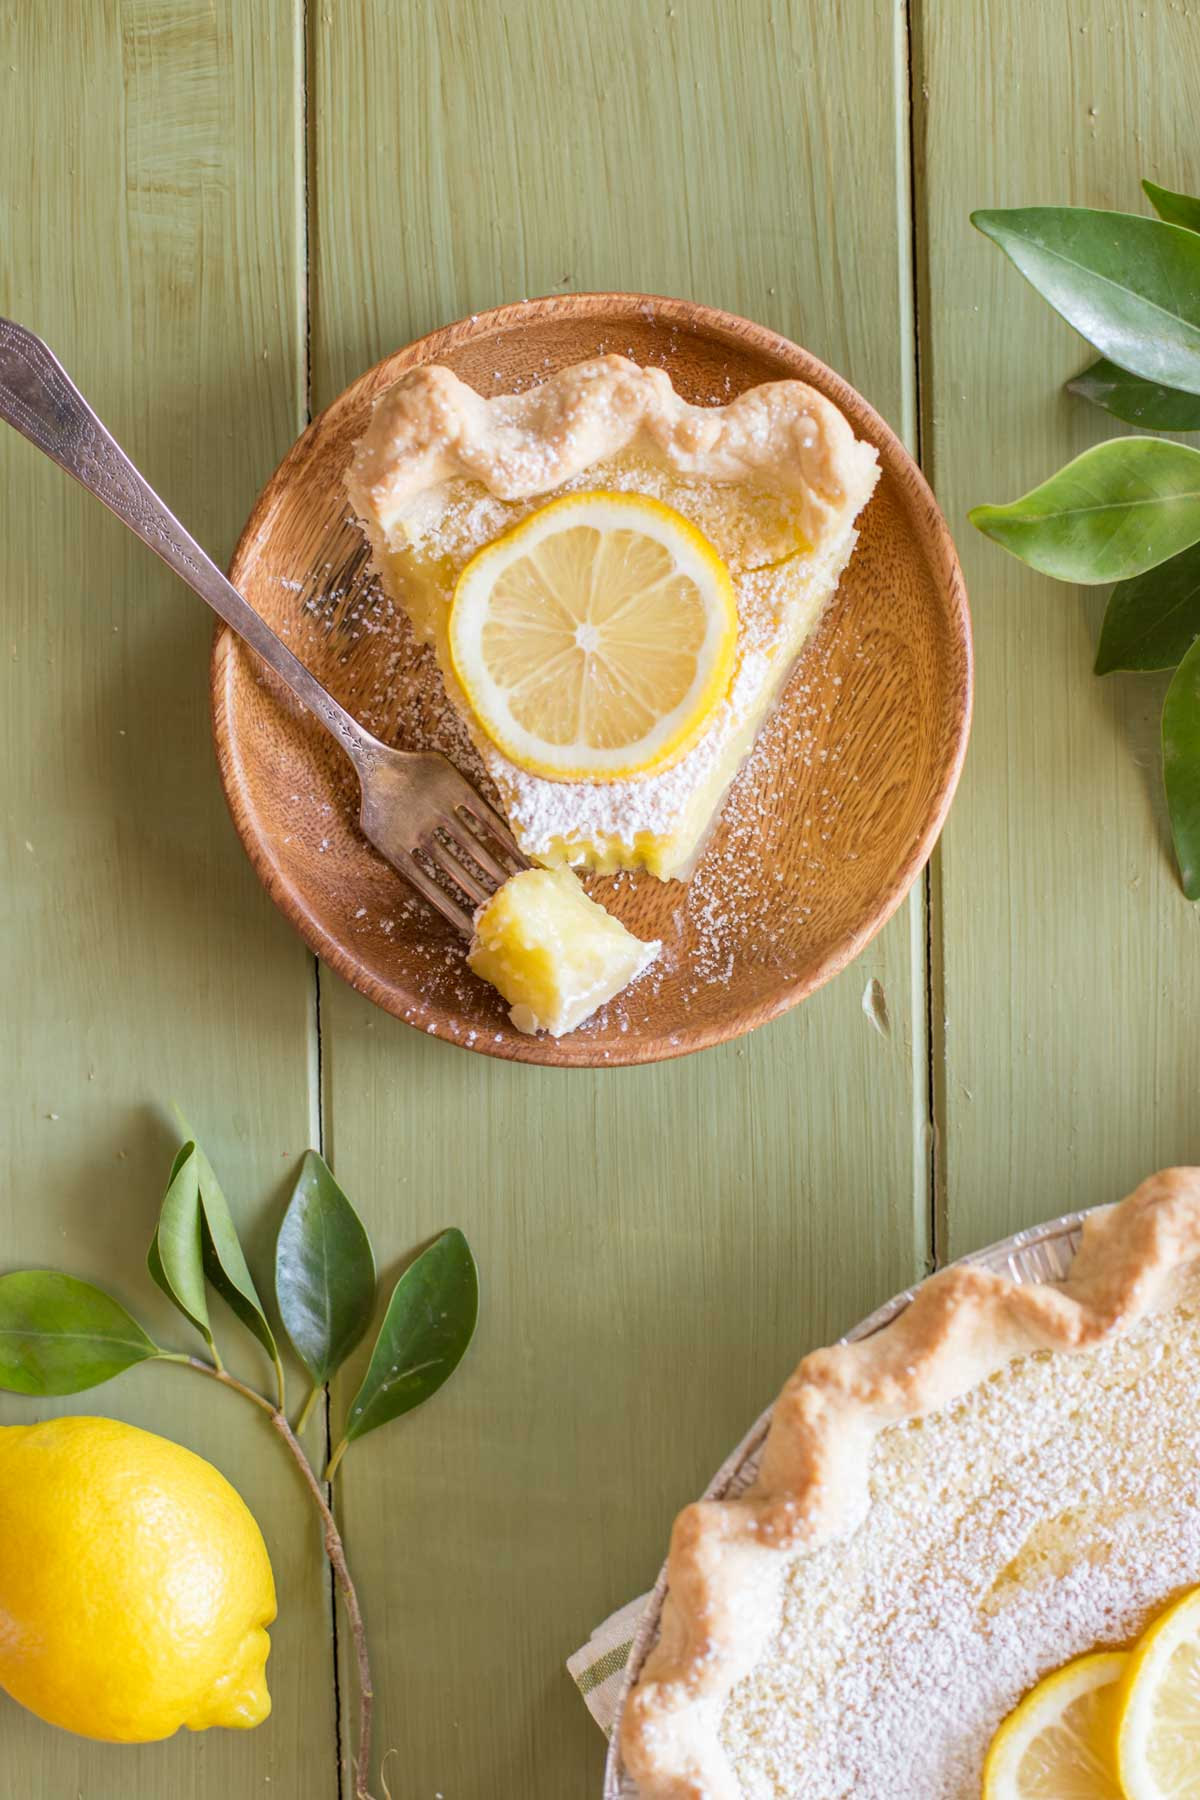 A slice of Whole Lemon Pie dusted with powdered sugar and topped with a lemon slice, on a plate with a fork with a piece of pie on it, siting next to the Whole Lemon Pie pan.